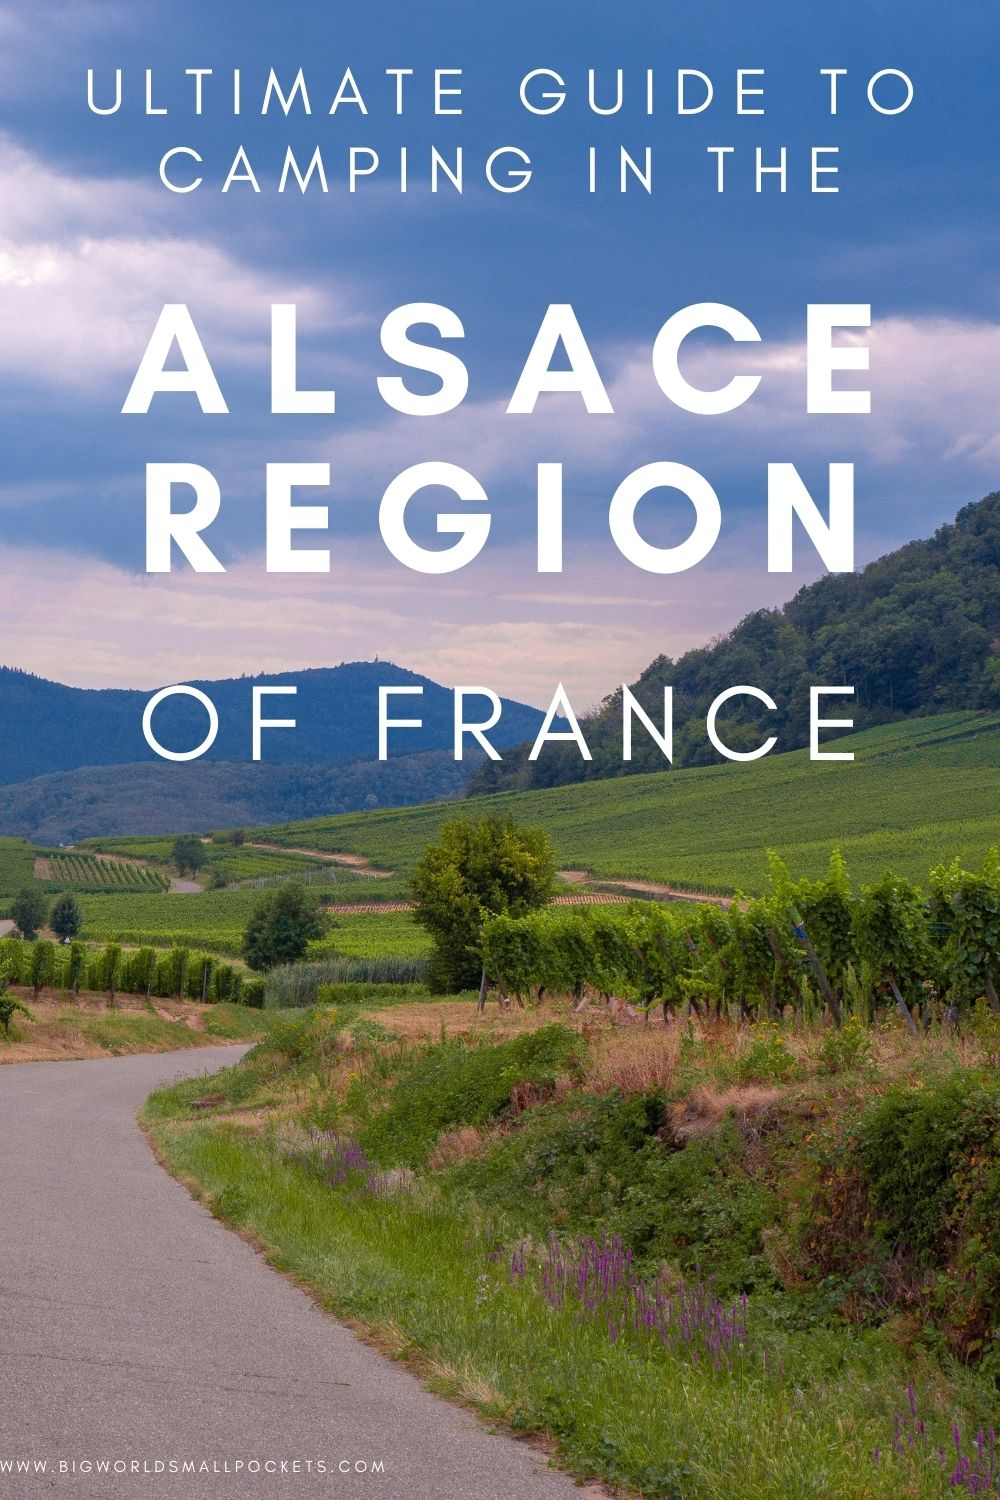 The Complete Guide to Camping In the Alsace Region, France